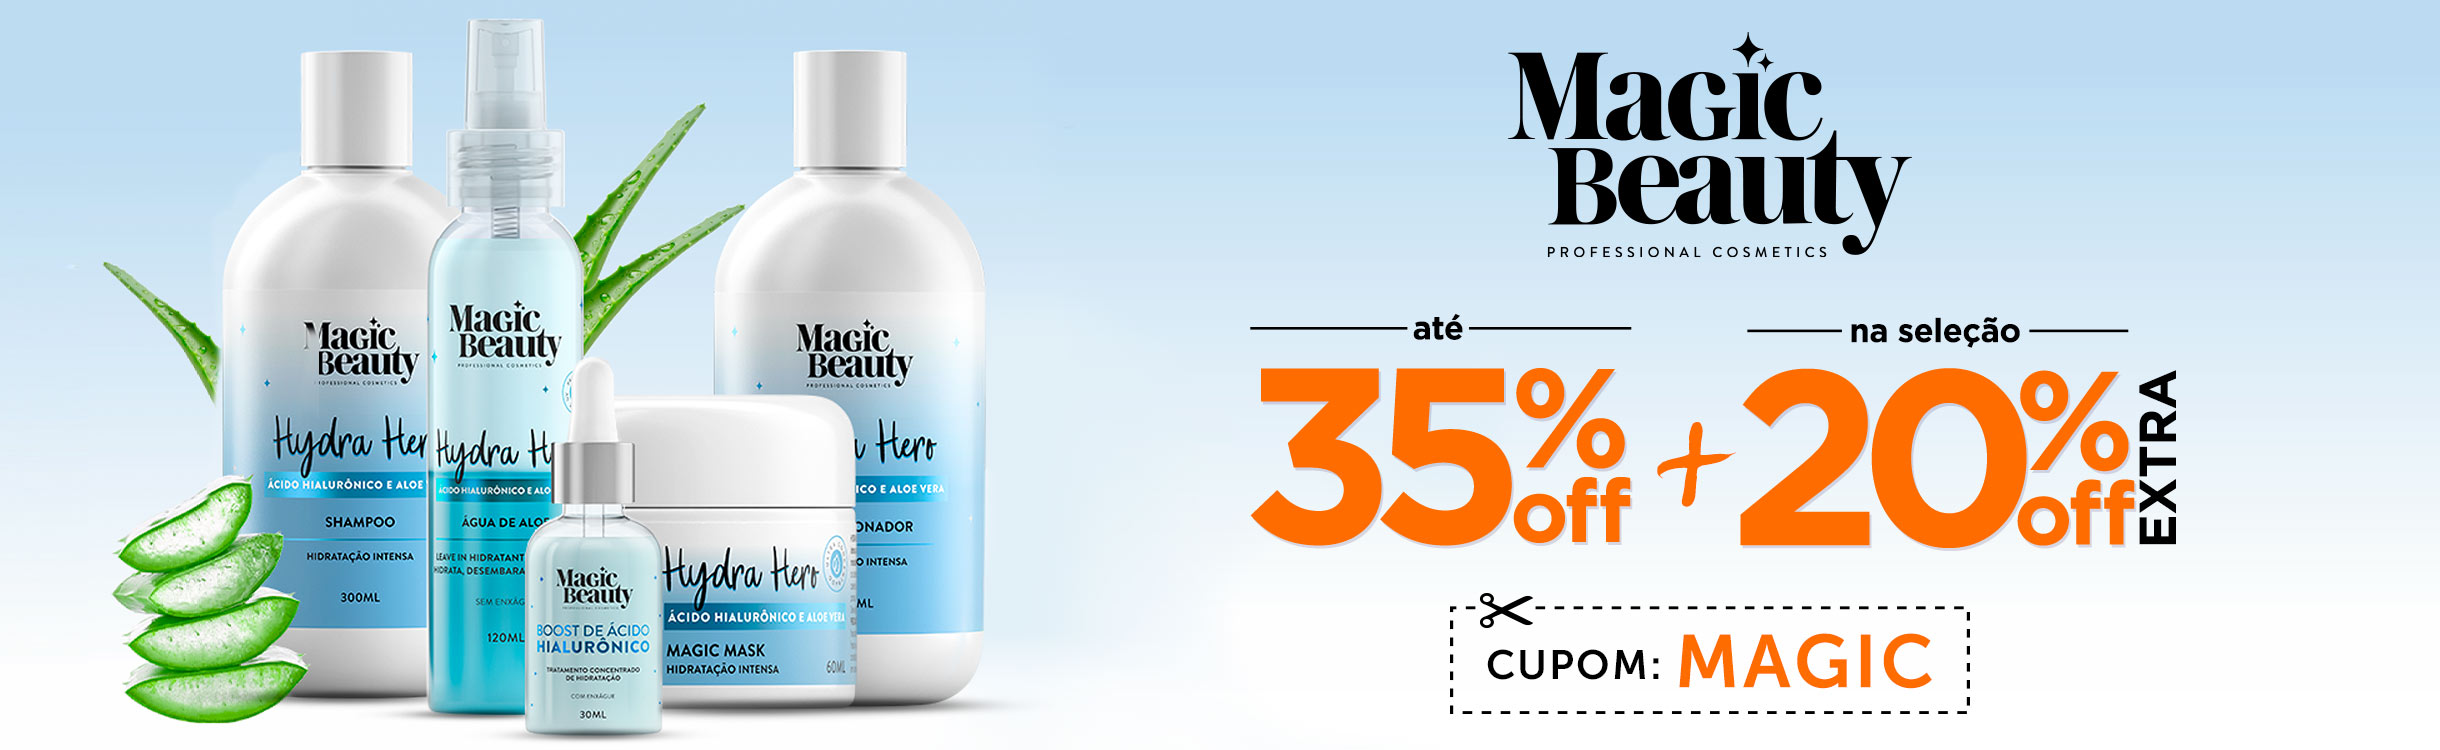 Magic Beauty com 36% OFF + 20% OFF Extra